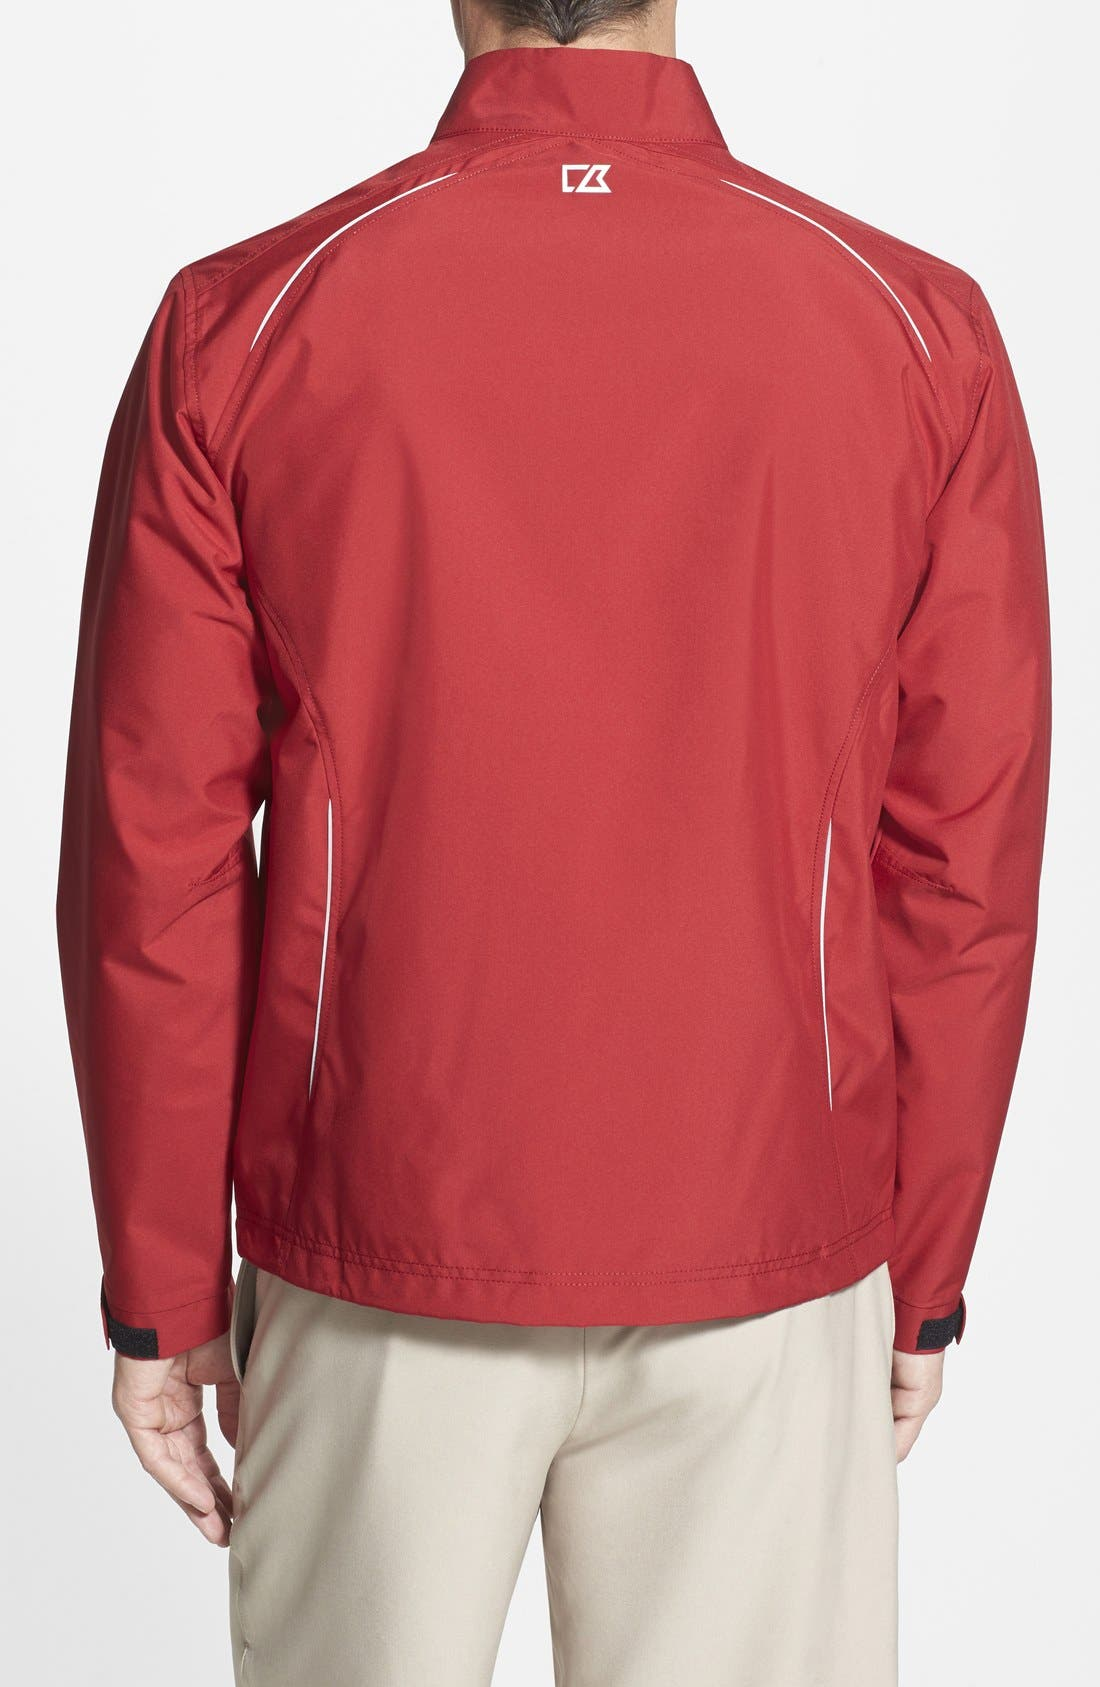 Arizona Cardinals - Beacon WeatherTec Wind & Water Resistant Jacket,                             Alternate thumbnail 2, color,                             613